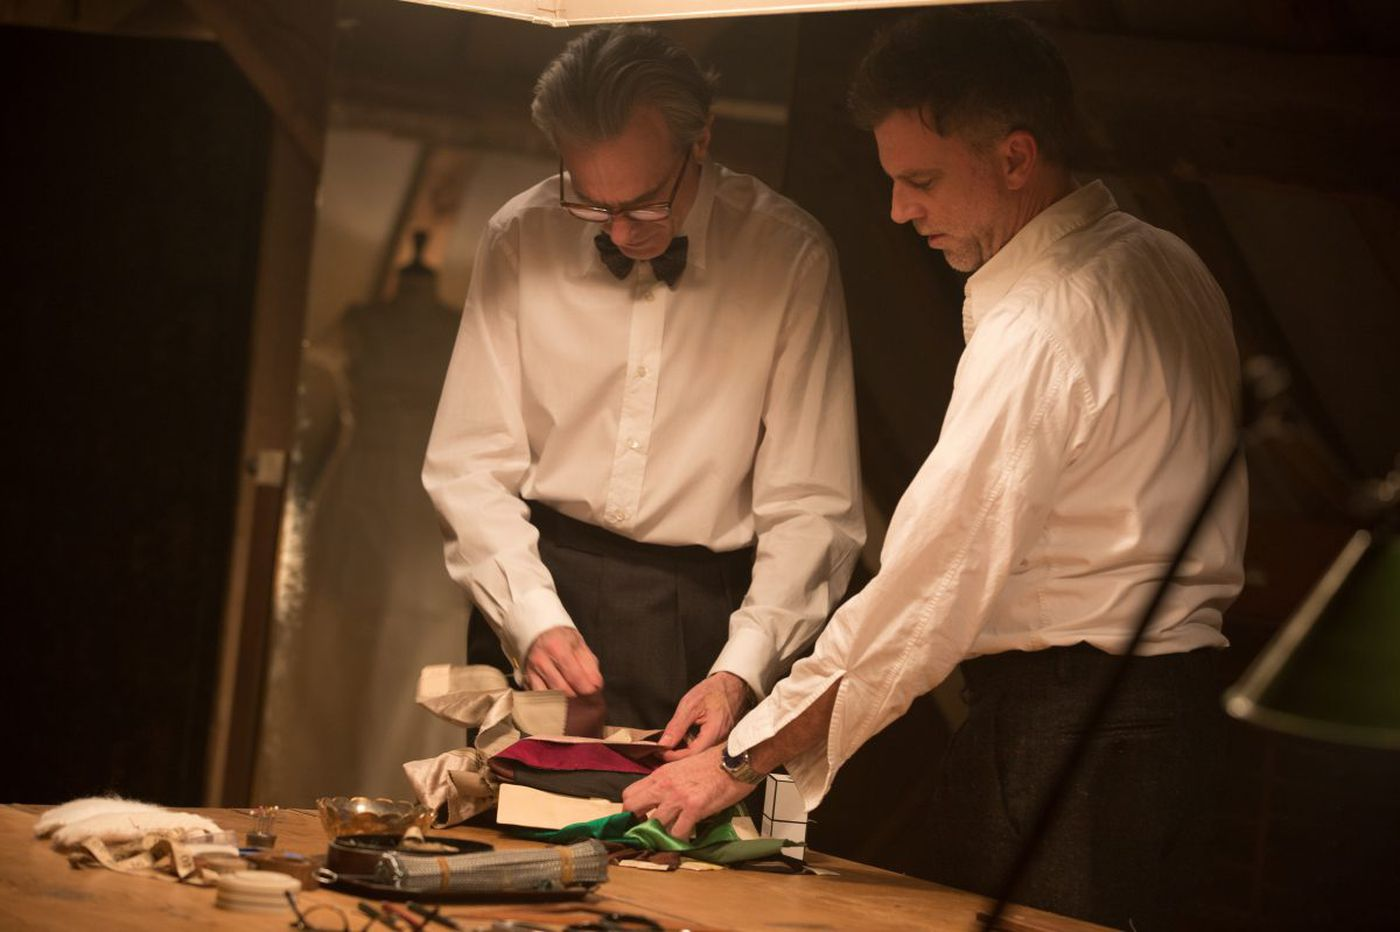 Director Paul Thomas Anderson: 'Phantom Thread' is funny, even if it made Daniel Day-Lewis announce plans to retire